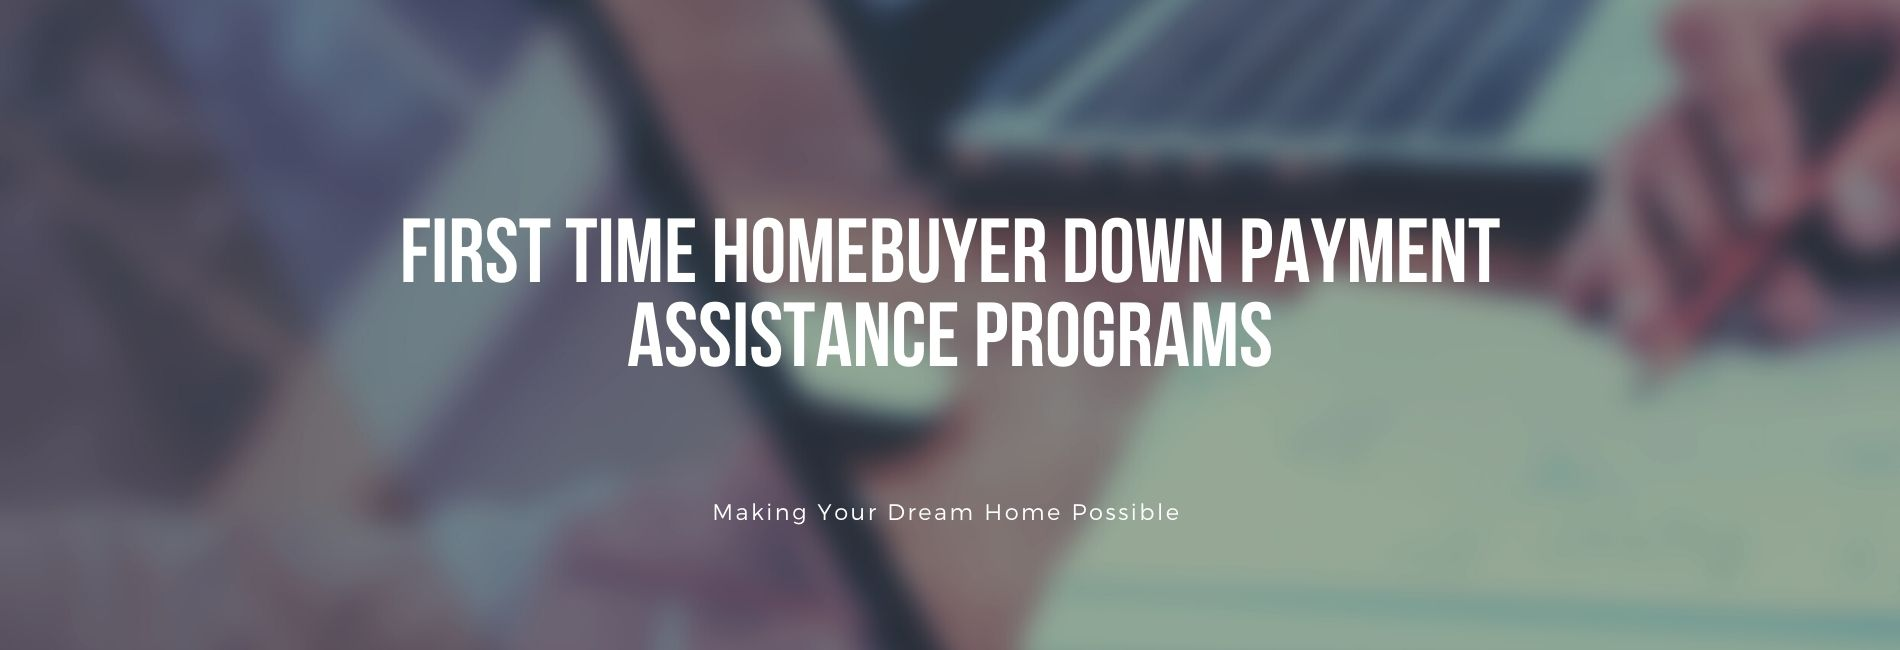 First time home buyer programs and down payment assistance programs for Colorado